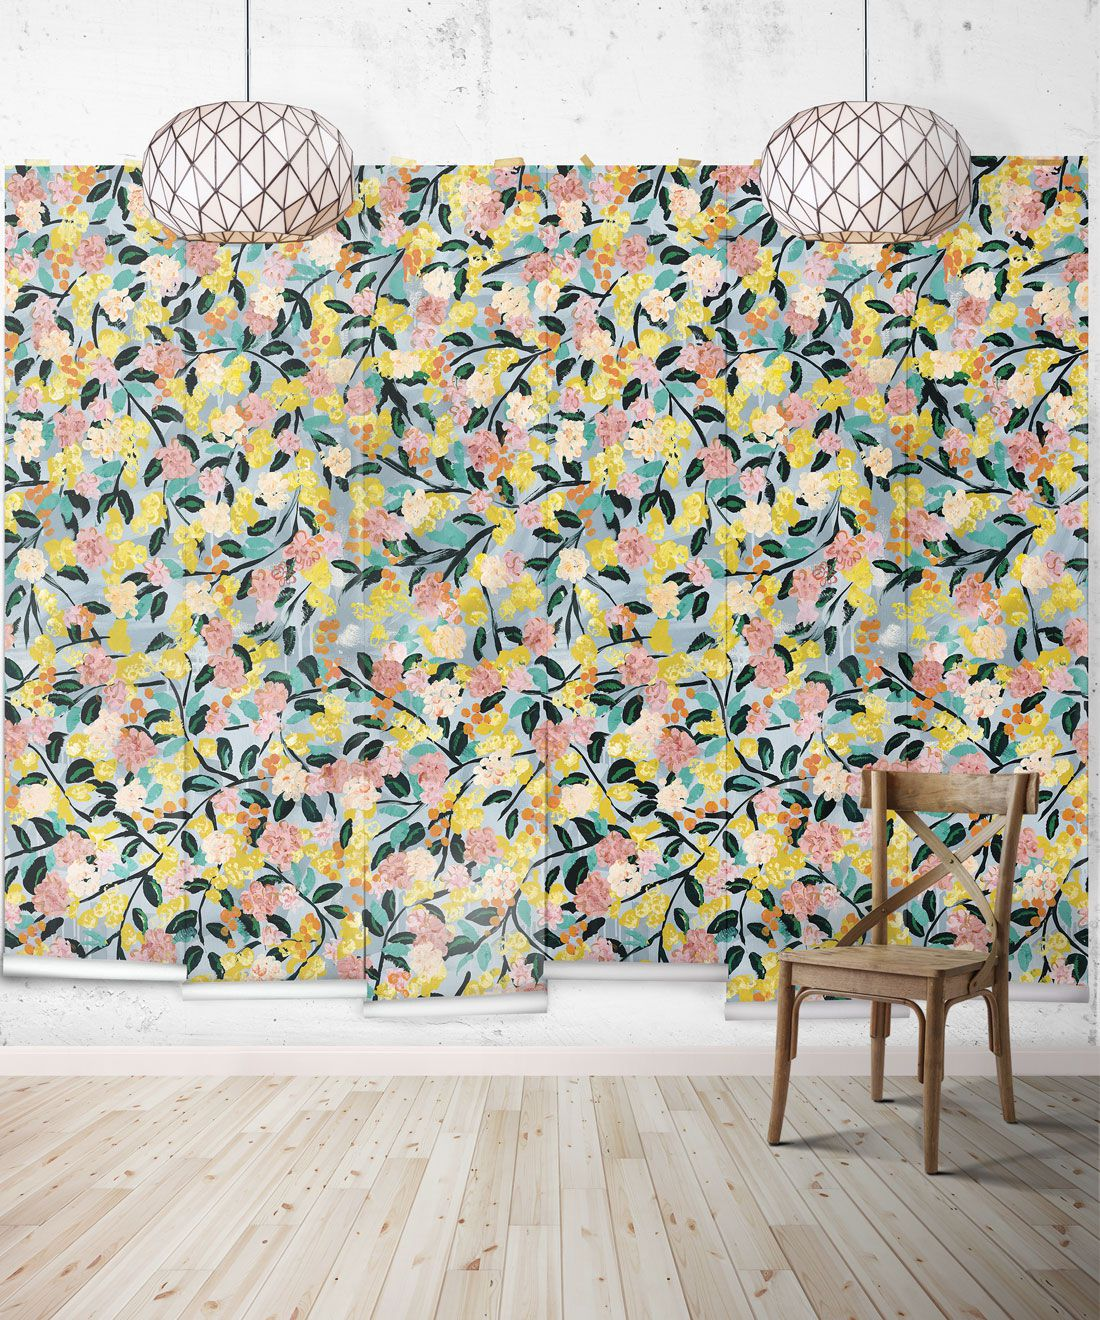 Blossom Wallpaper •Colourful Floral Wallpaper • Tiff Manuell • Abstract Expressionist Wallpaper • Wide Insitu